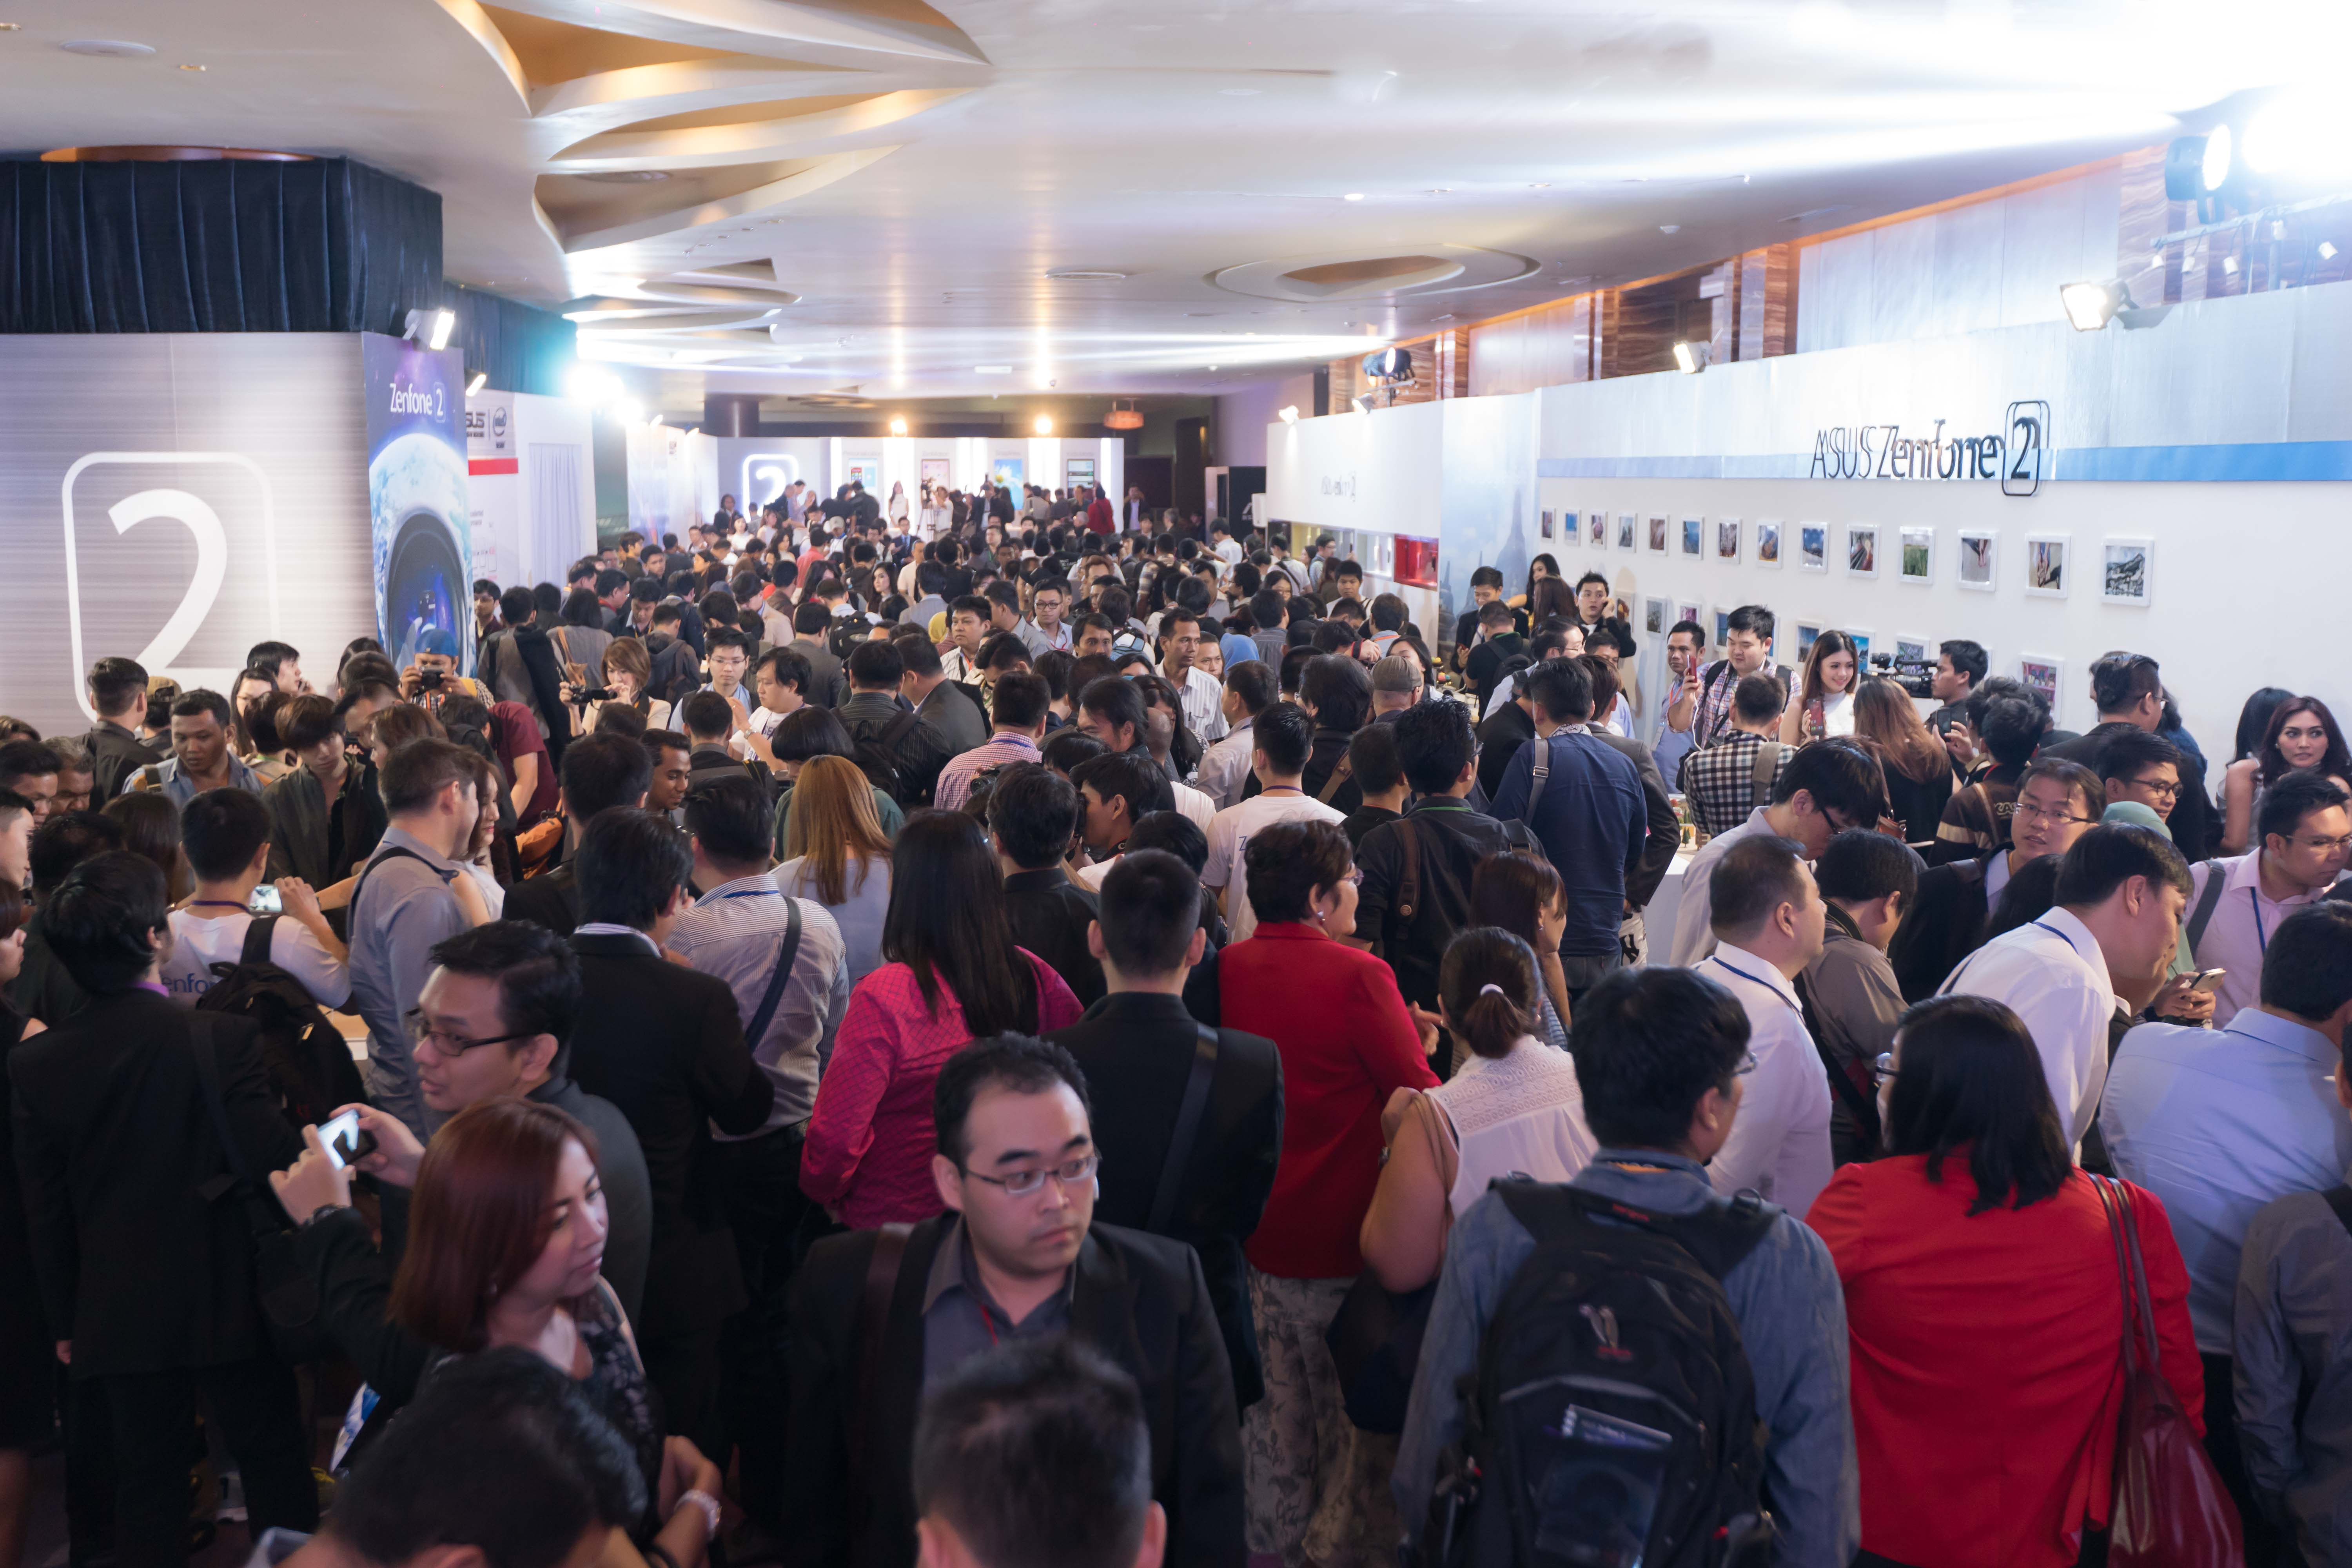 Over 1,000 Southeast Asian media and consumers experience ASUS ZenFone 2.